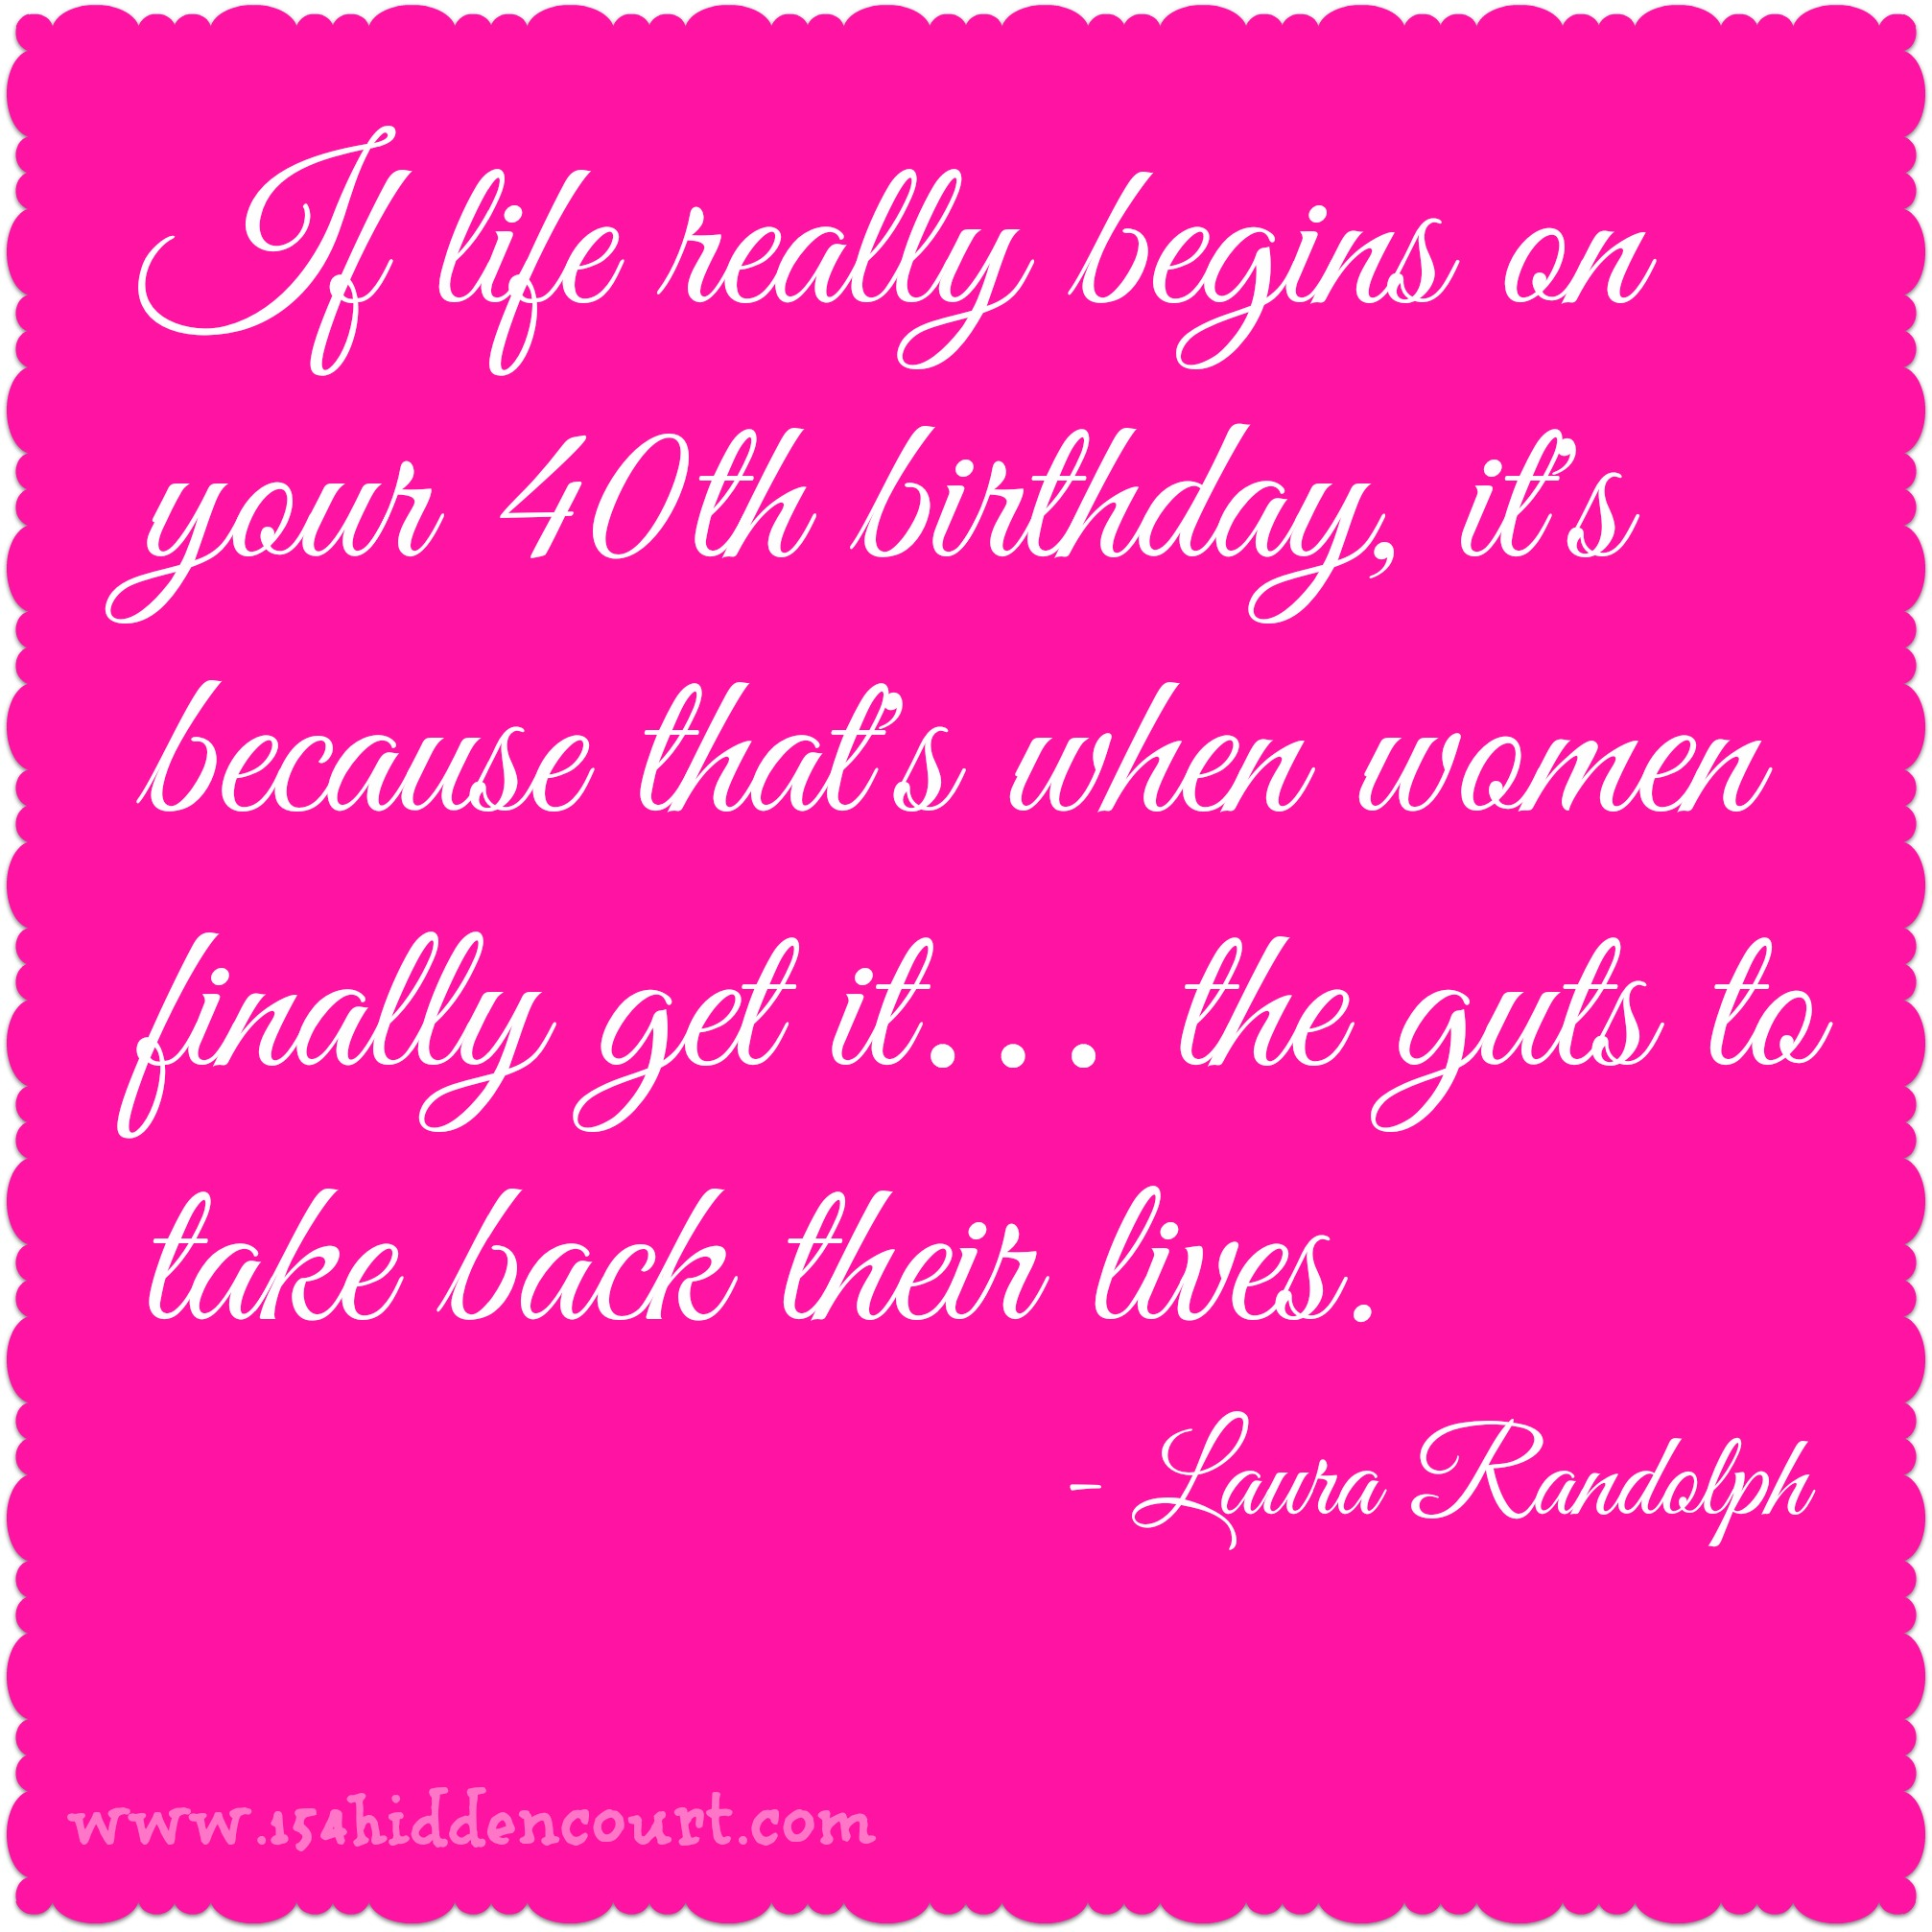 Birthday Celebration Quotes And Sayings. QuotesGram